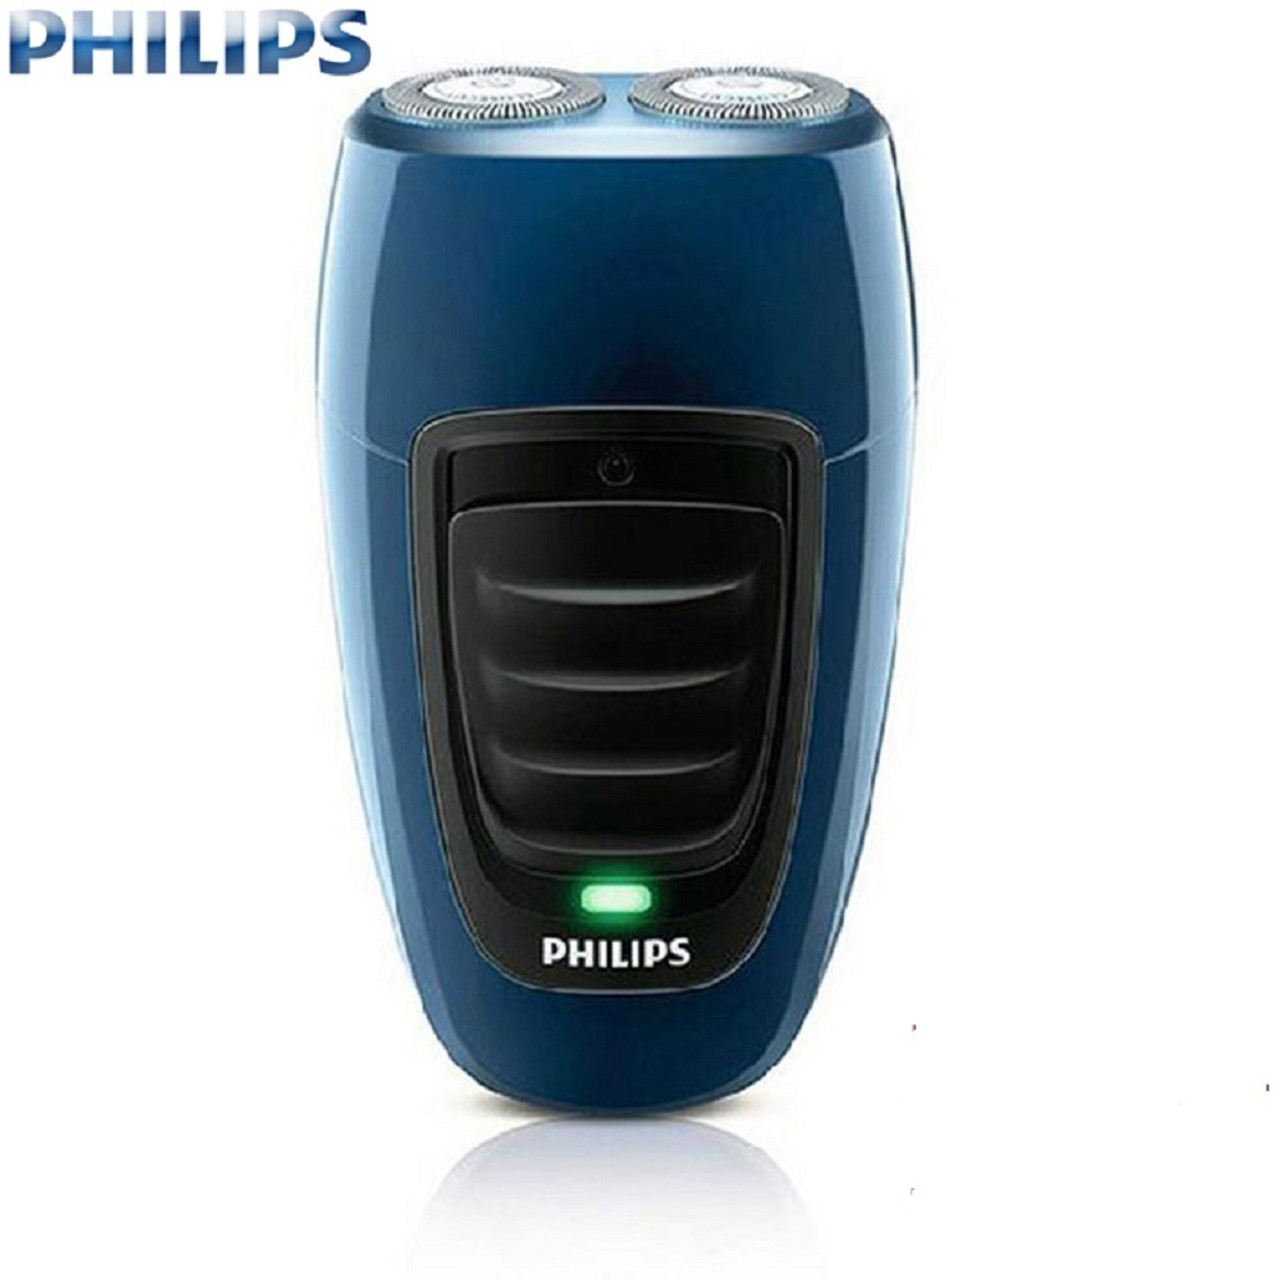 Philips Electric Shaver Rechargeable with Ni-MH Battery 100-220V Voltage  Electric Shave Razor With Retail Package for Men PQ190 - OnshopDeals.Com 53f3ab34fb51